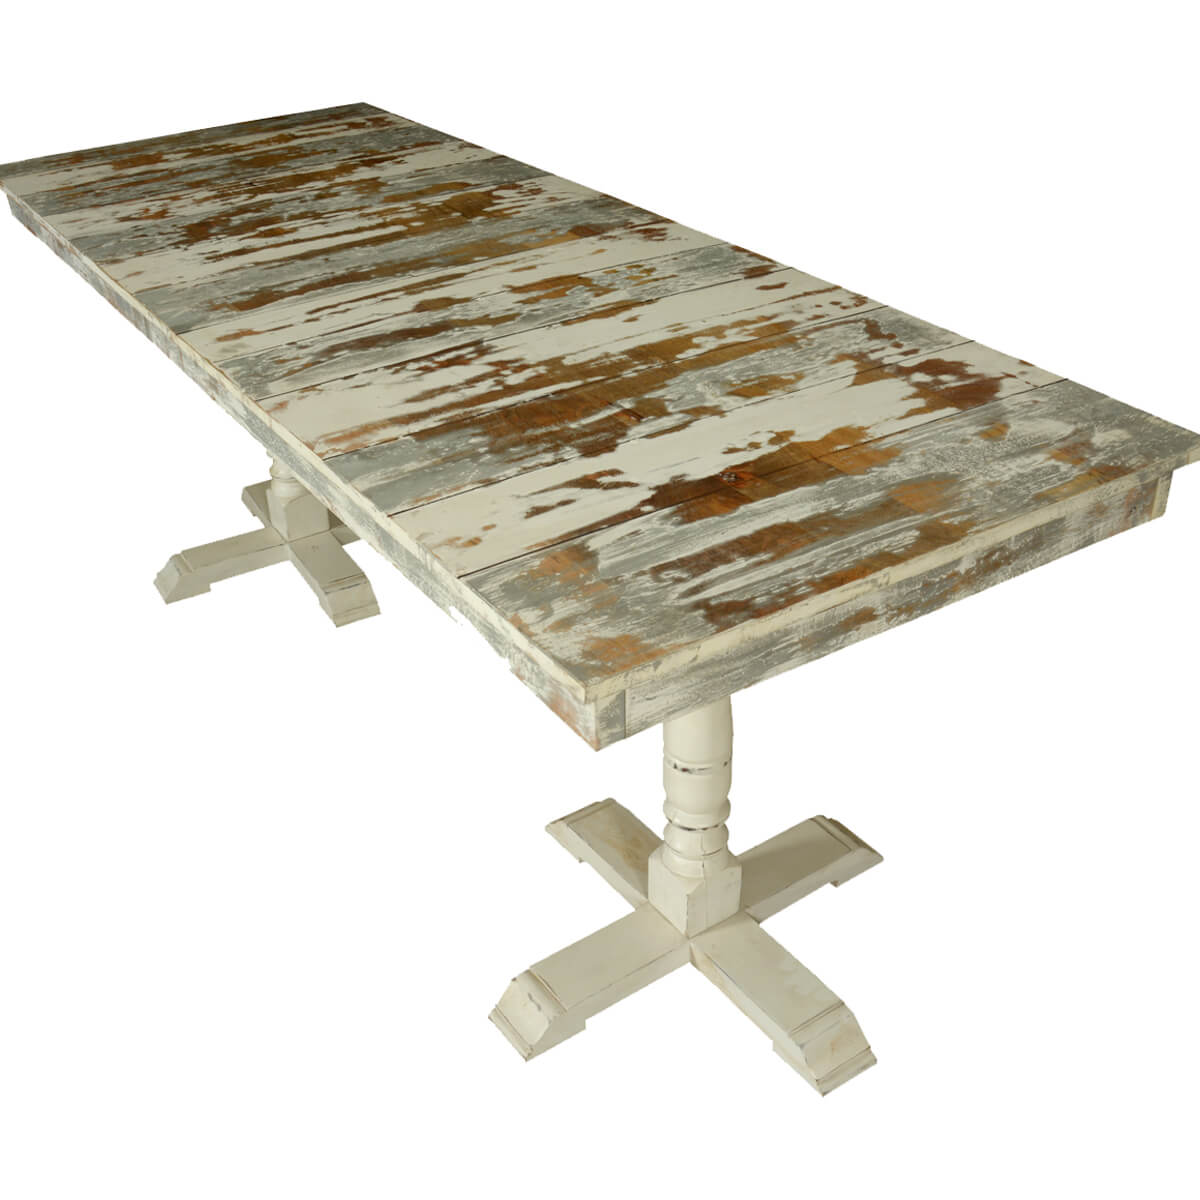 Distressed White Dining Table Distressed White Finish  : 72073 from amlibgroup.com size 1200 x 1200 jpeg 539kB